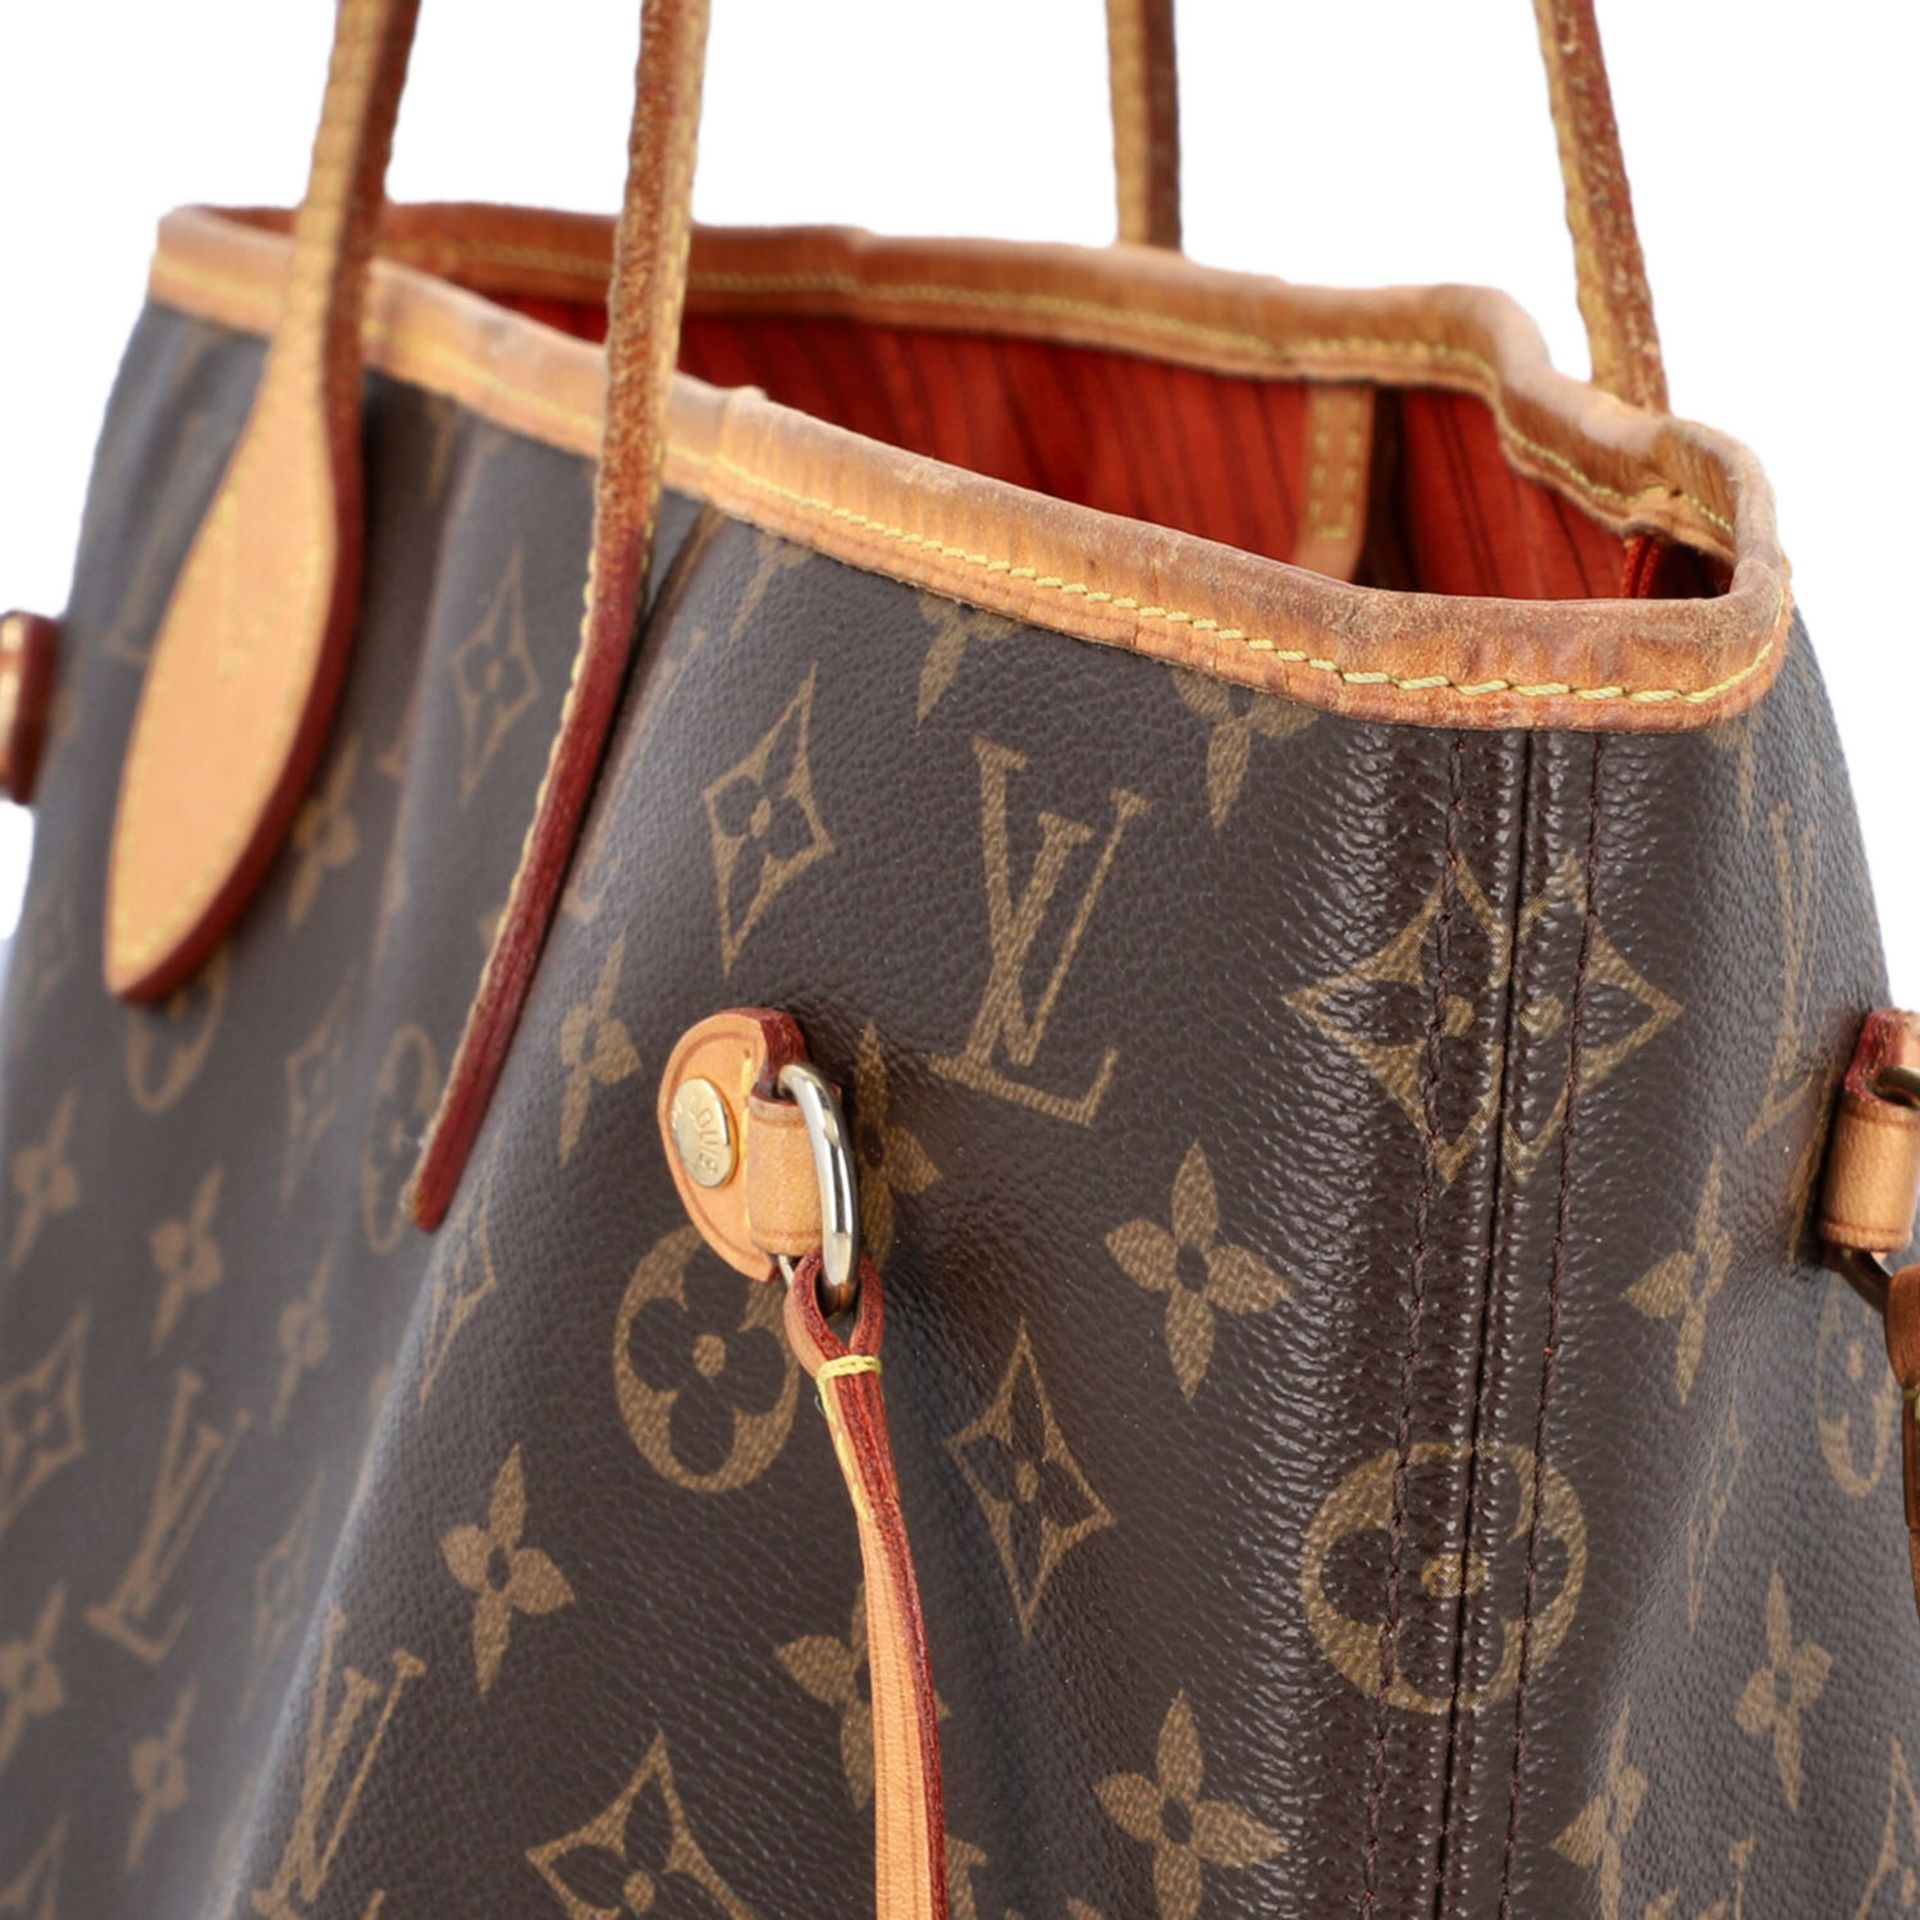 "LOUIS VUITTON Shoppertasche ""NEVERFULL MM"", Koll. 2014. Akt. NP.: 1150,-€. Monogram - Image 8 of 8"